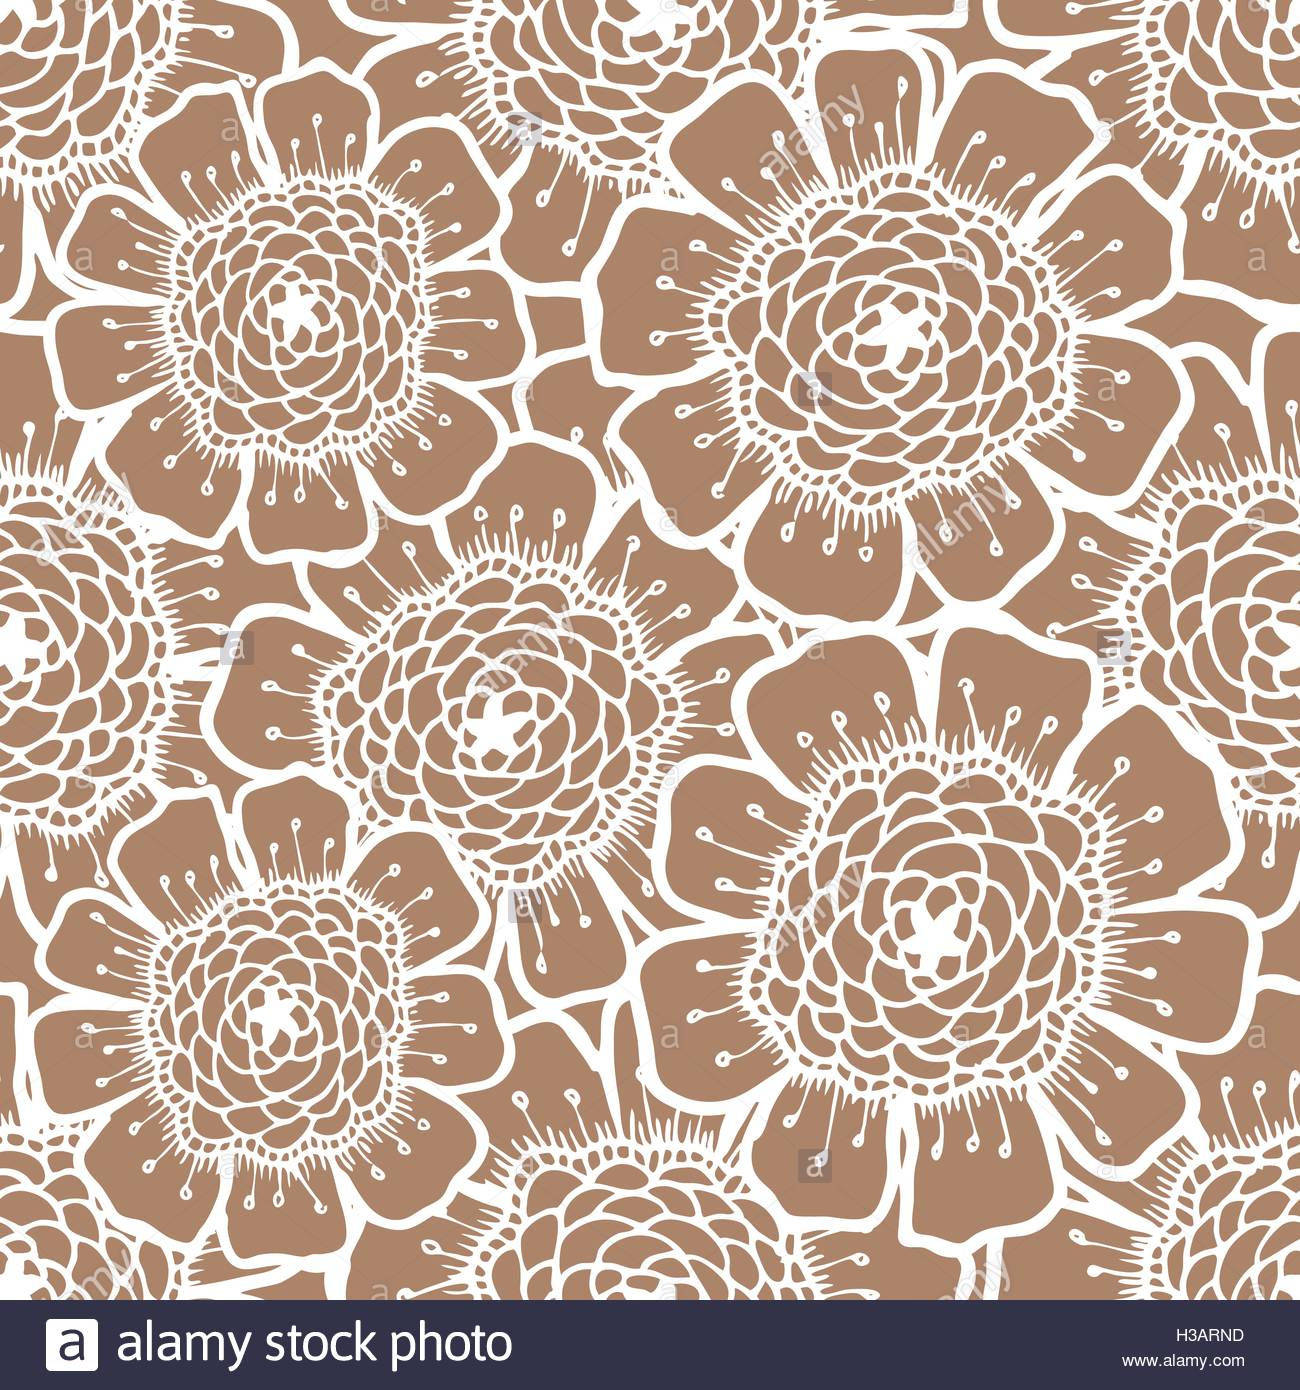 Ornate floral pattern with flowers Doodle sharpie background 1300x1390